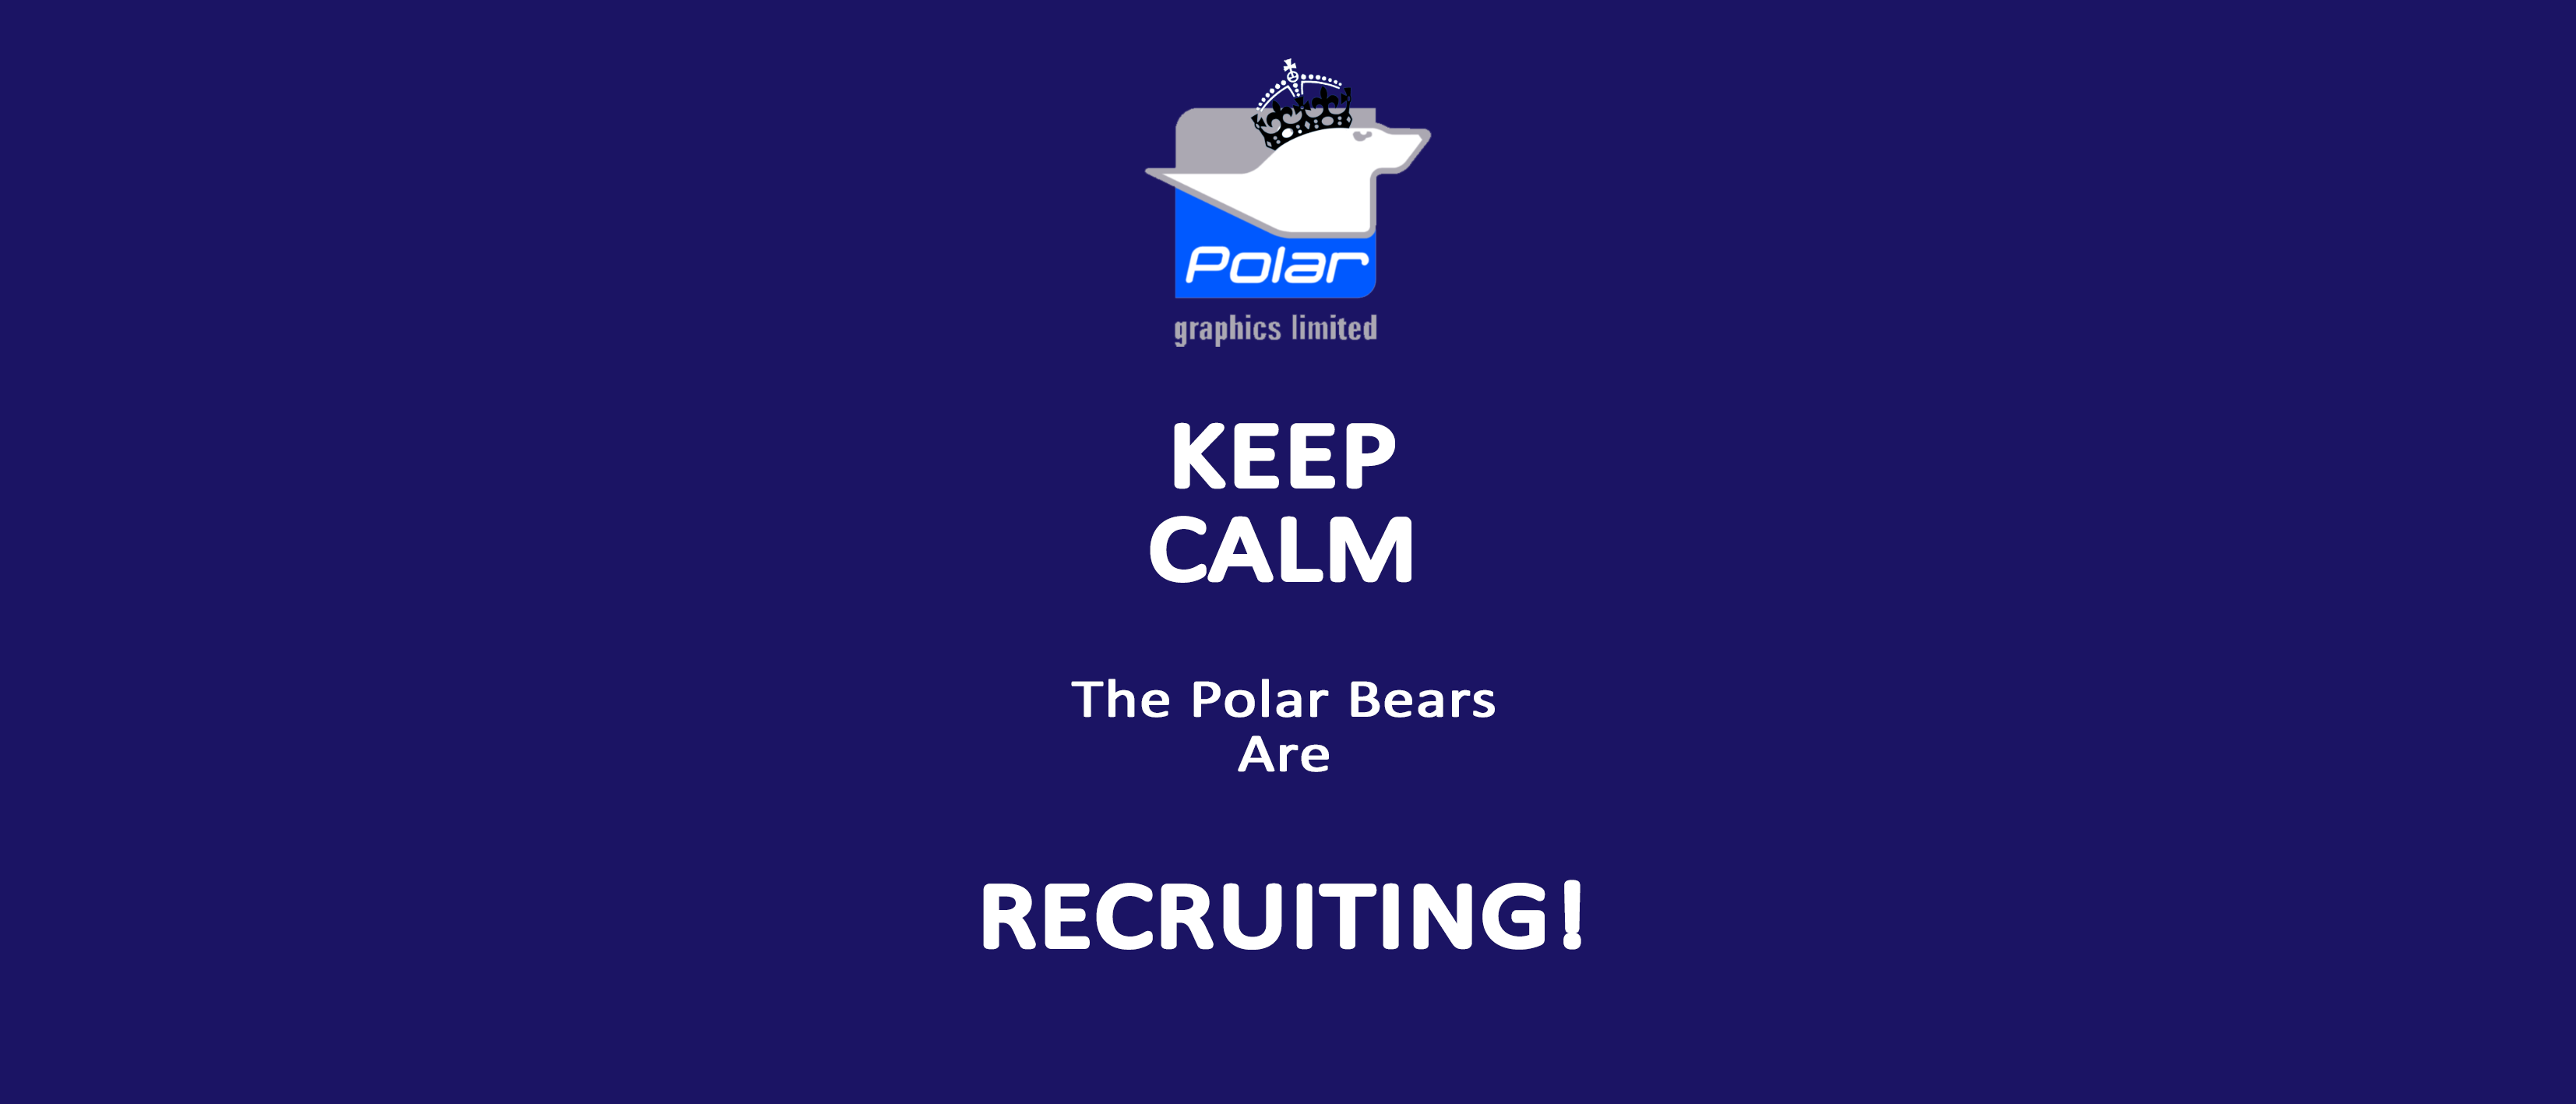 Polar Keep Calm_Polar Are Recruiting